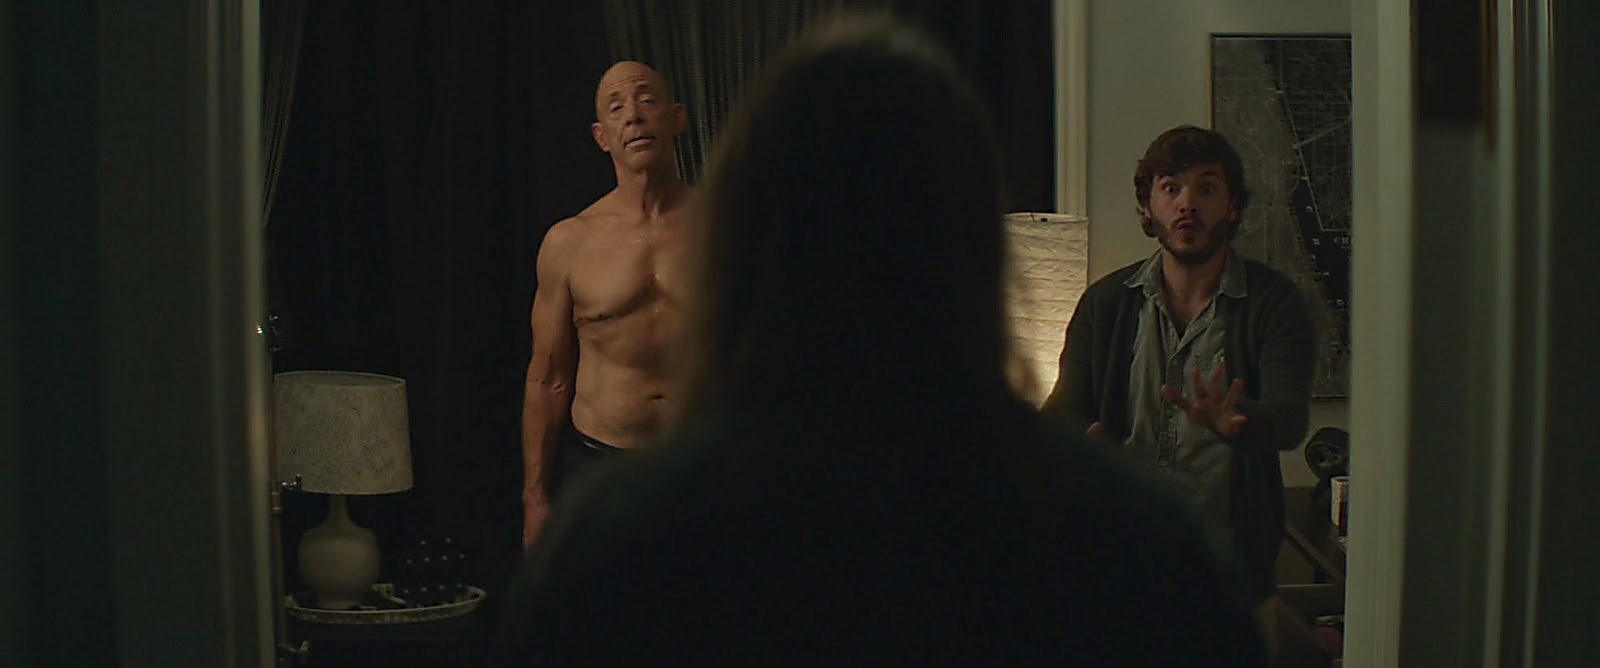 J K Simmons sexy shirtless scene March 25, 2017, 1pm